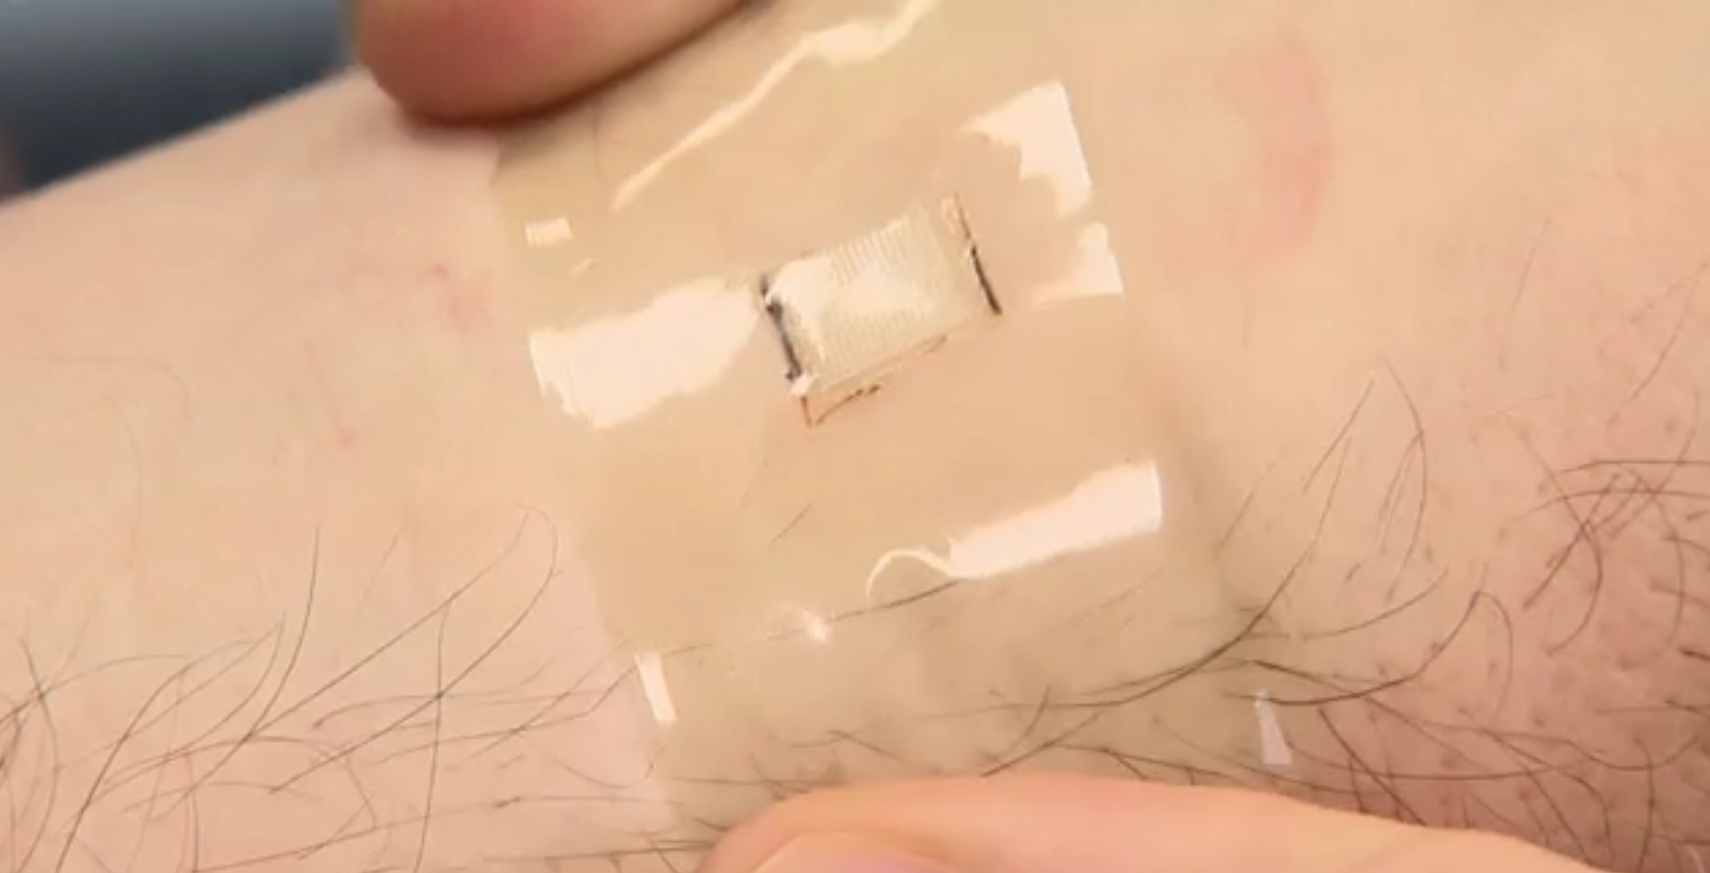 These Microneedles Would Be So Much Better Than Injections